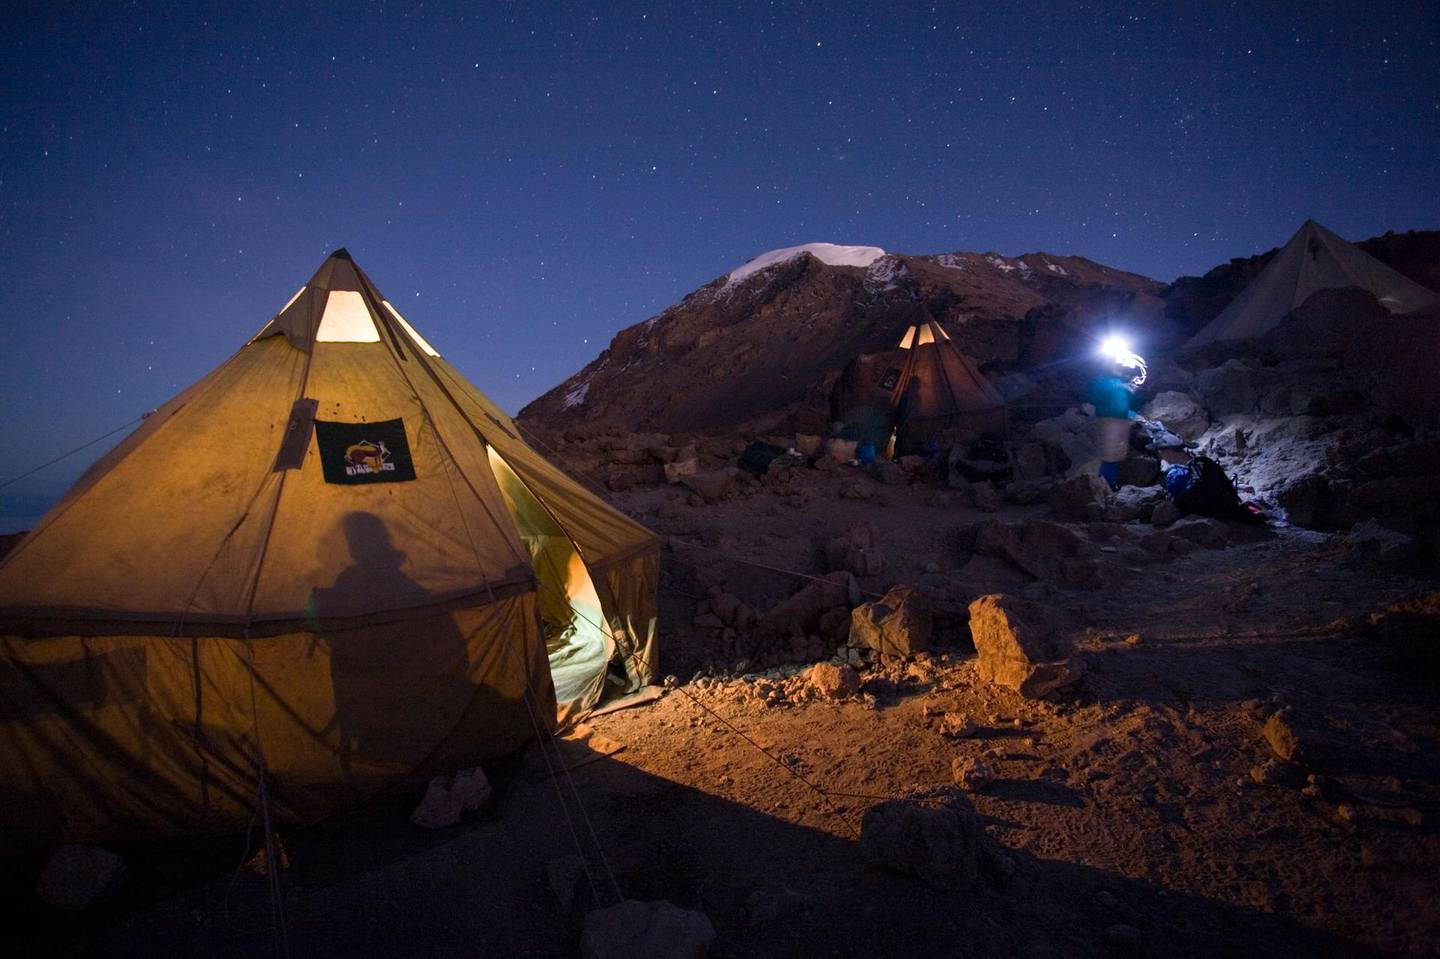 ADP5TW Africa Tanzania Kilimanjaro National Park Climbing partys tents glow before dawn summit departure from Barafu Camp. WorldFoto / Alamy Stock Photo